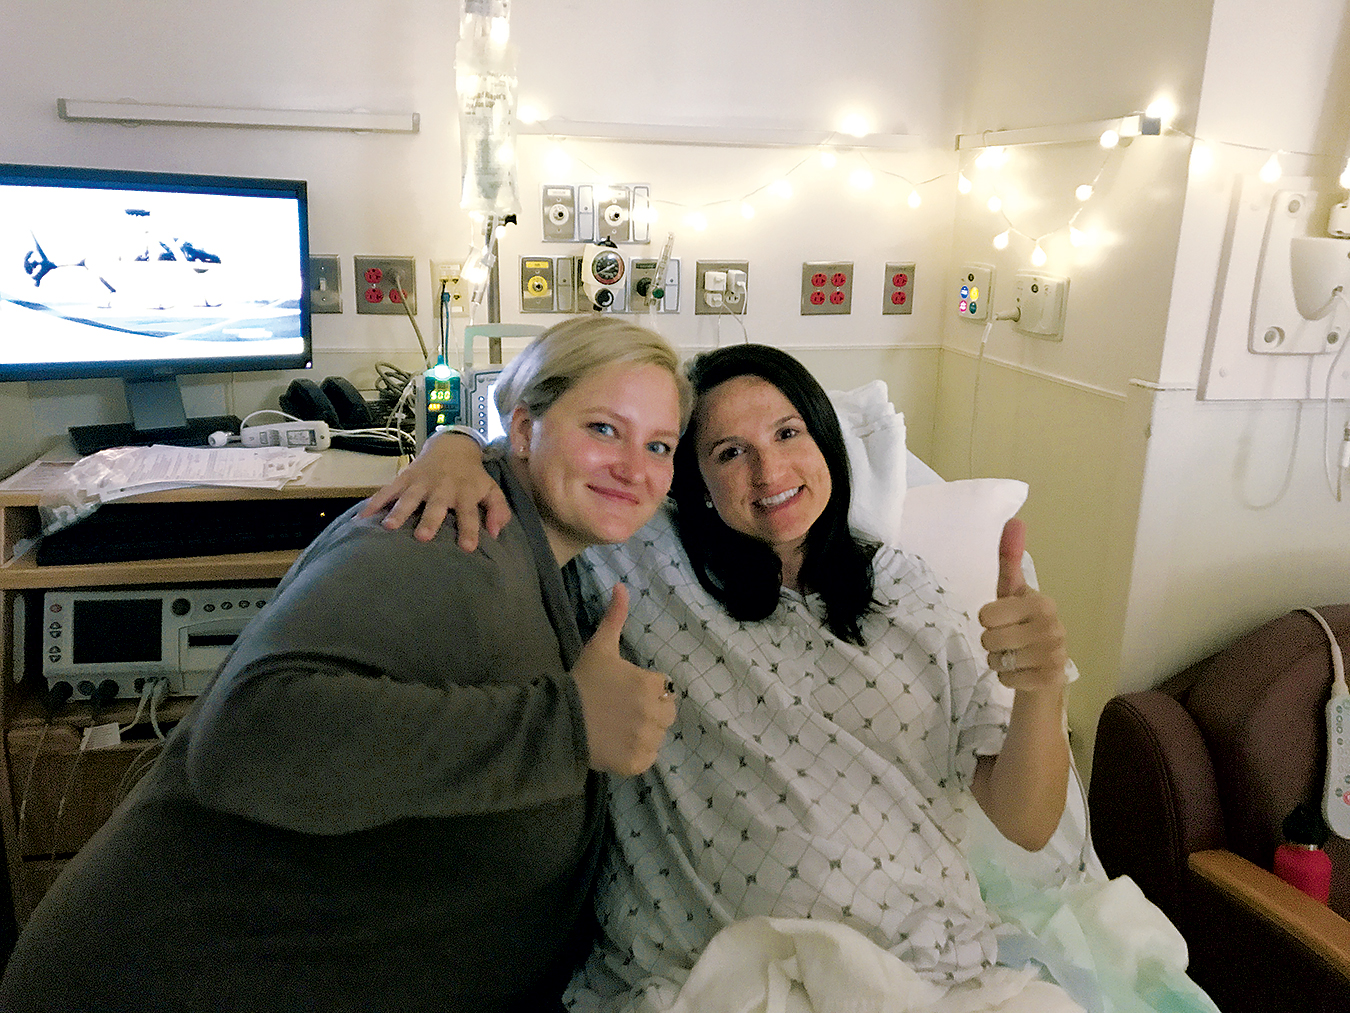 When Liz Palka Minukas was at the hospital in labor, doula Casey Runck helped her relax by hanging twinkle lights around the bed. Photograph courtesy of Casey Runck.